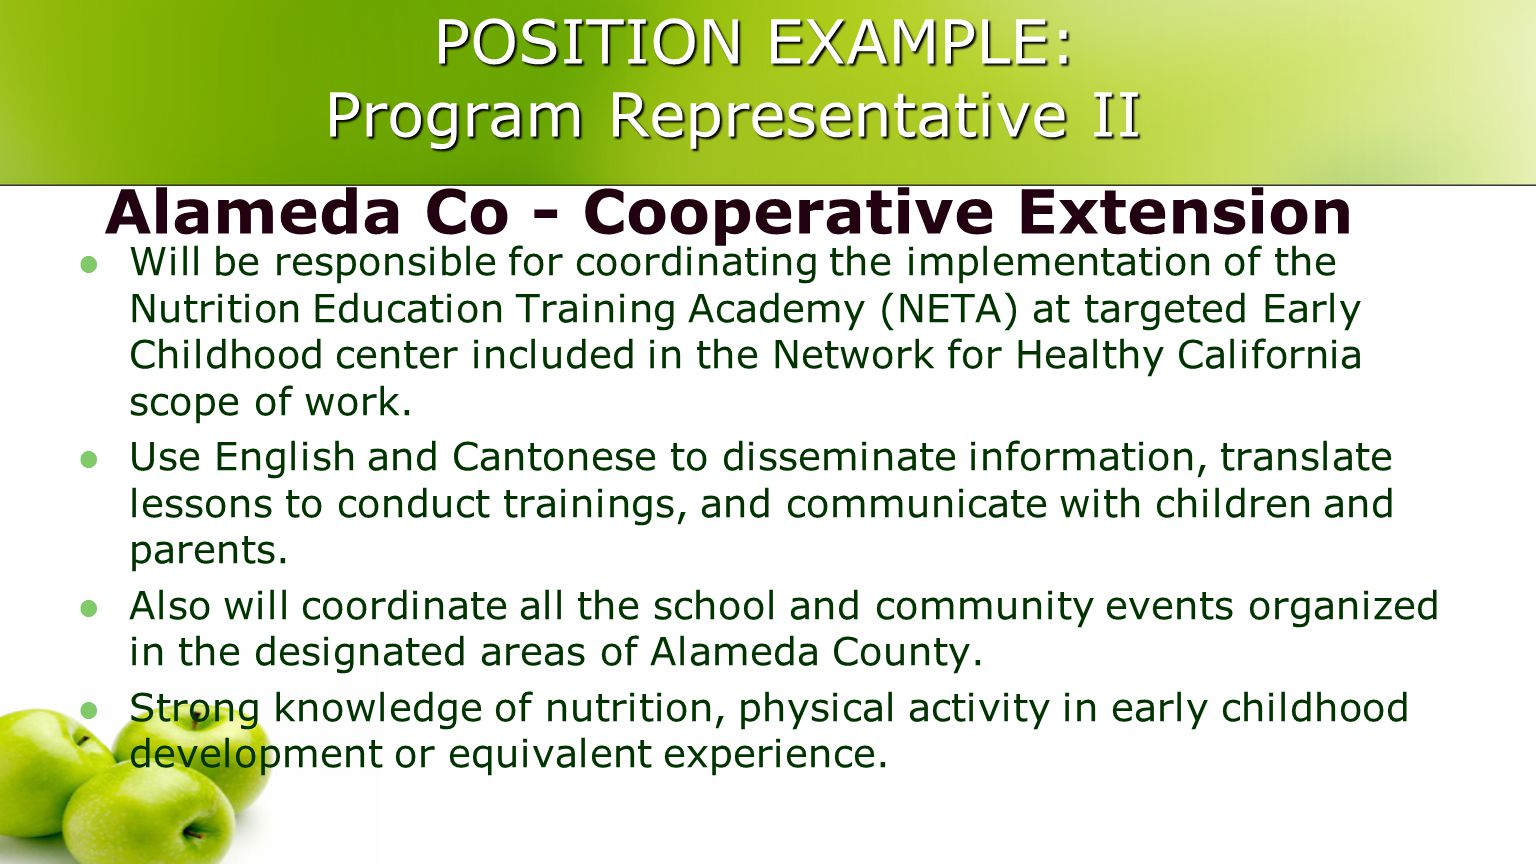 POSITION EXAMPLE: Program Representative II POSITION EXAMPLE: Program Representative II Alameda Co - Cooperative Extension Will be responsible for coordinating the implementation of the Nutrition Education Training Academy (NETA) at targeted Early Childhood center included in the Network for Healthy California scope of work.